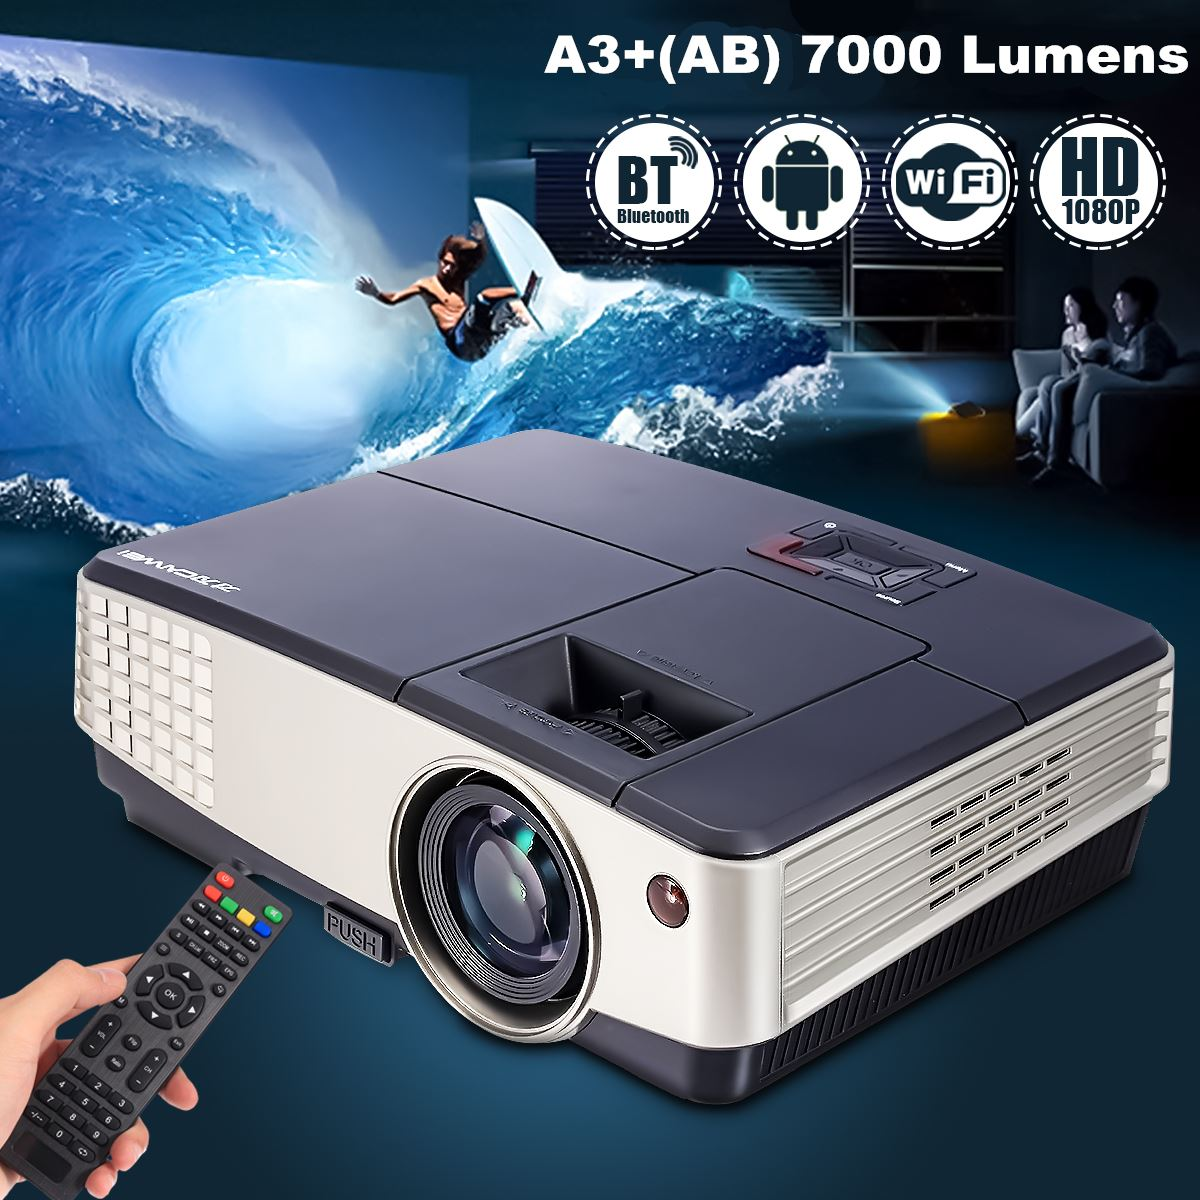 7000 Lumens A3+AB Projector 1080P Full HD LCD Wifi Home Theater Cinema 72W LED Android 4.4 Bluetooth Multimedia Beamer wzatco 5500lumen android smart wifi 1080p full hd led lcd 3d video dvbt tv projector portable multimedia home cinema beamer